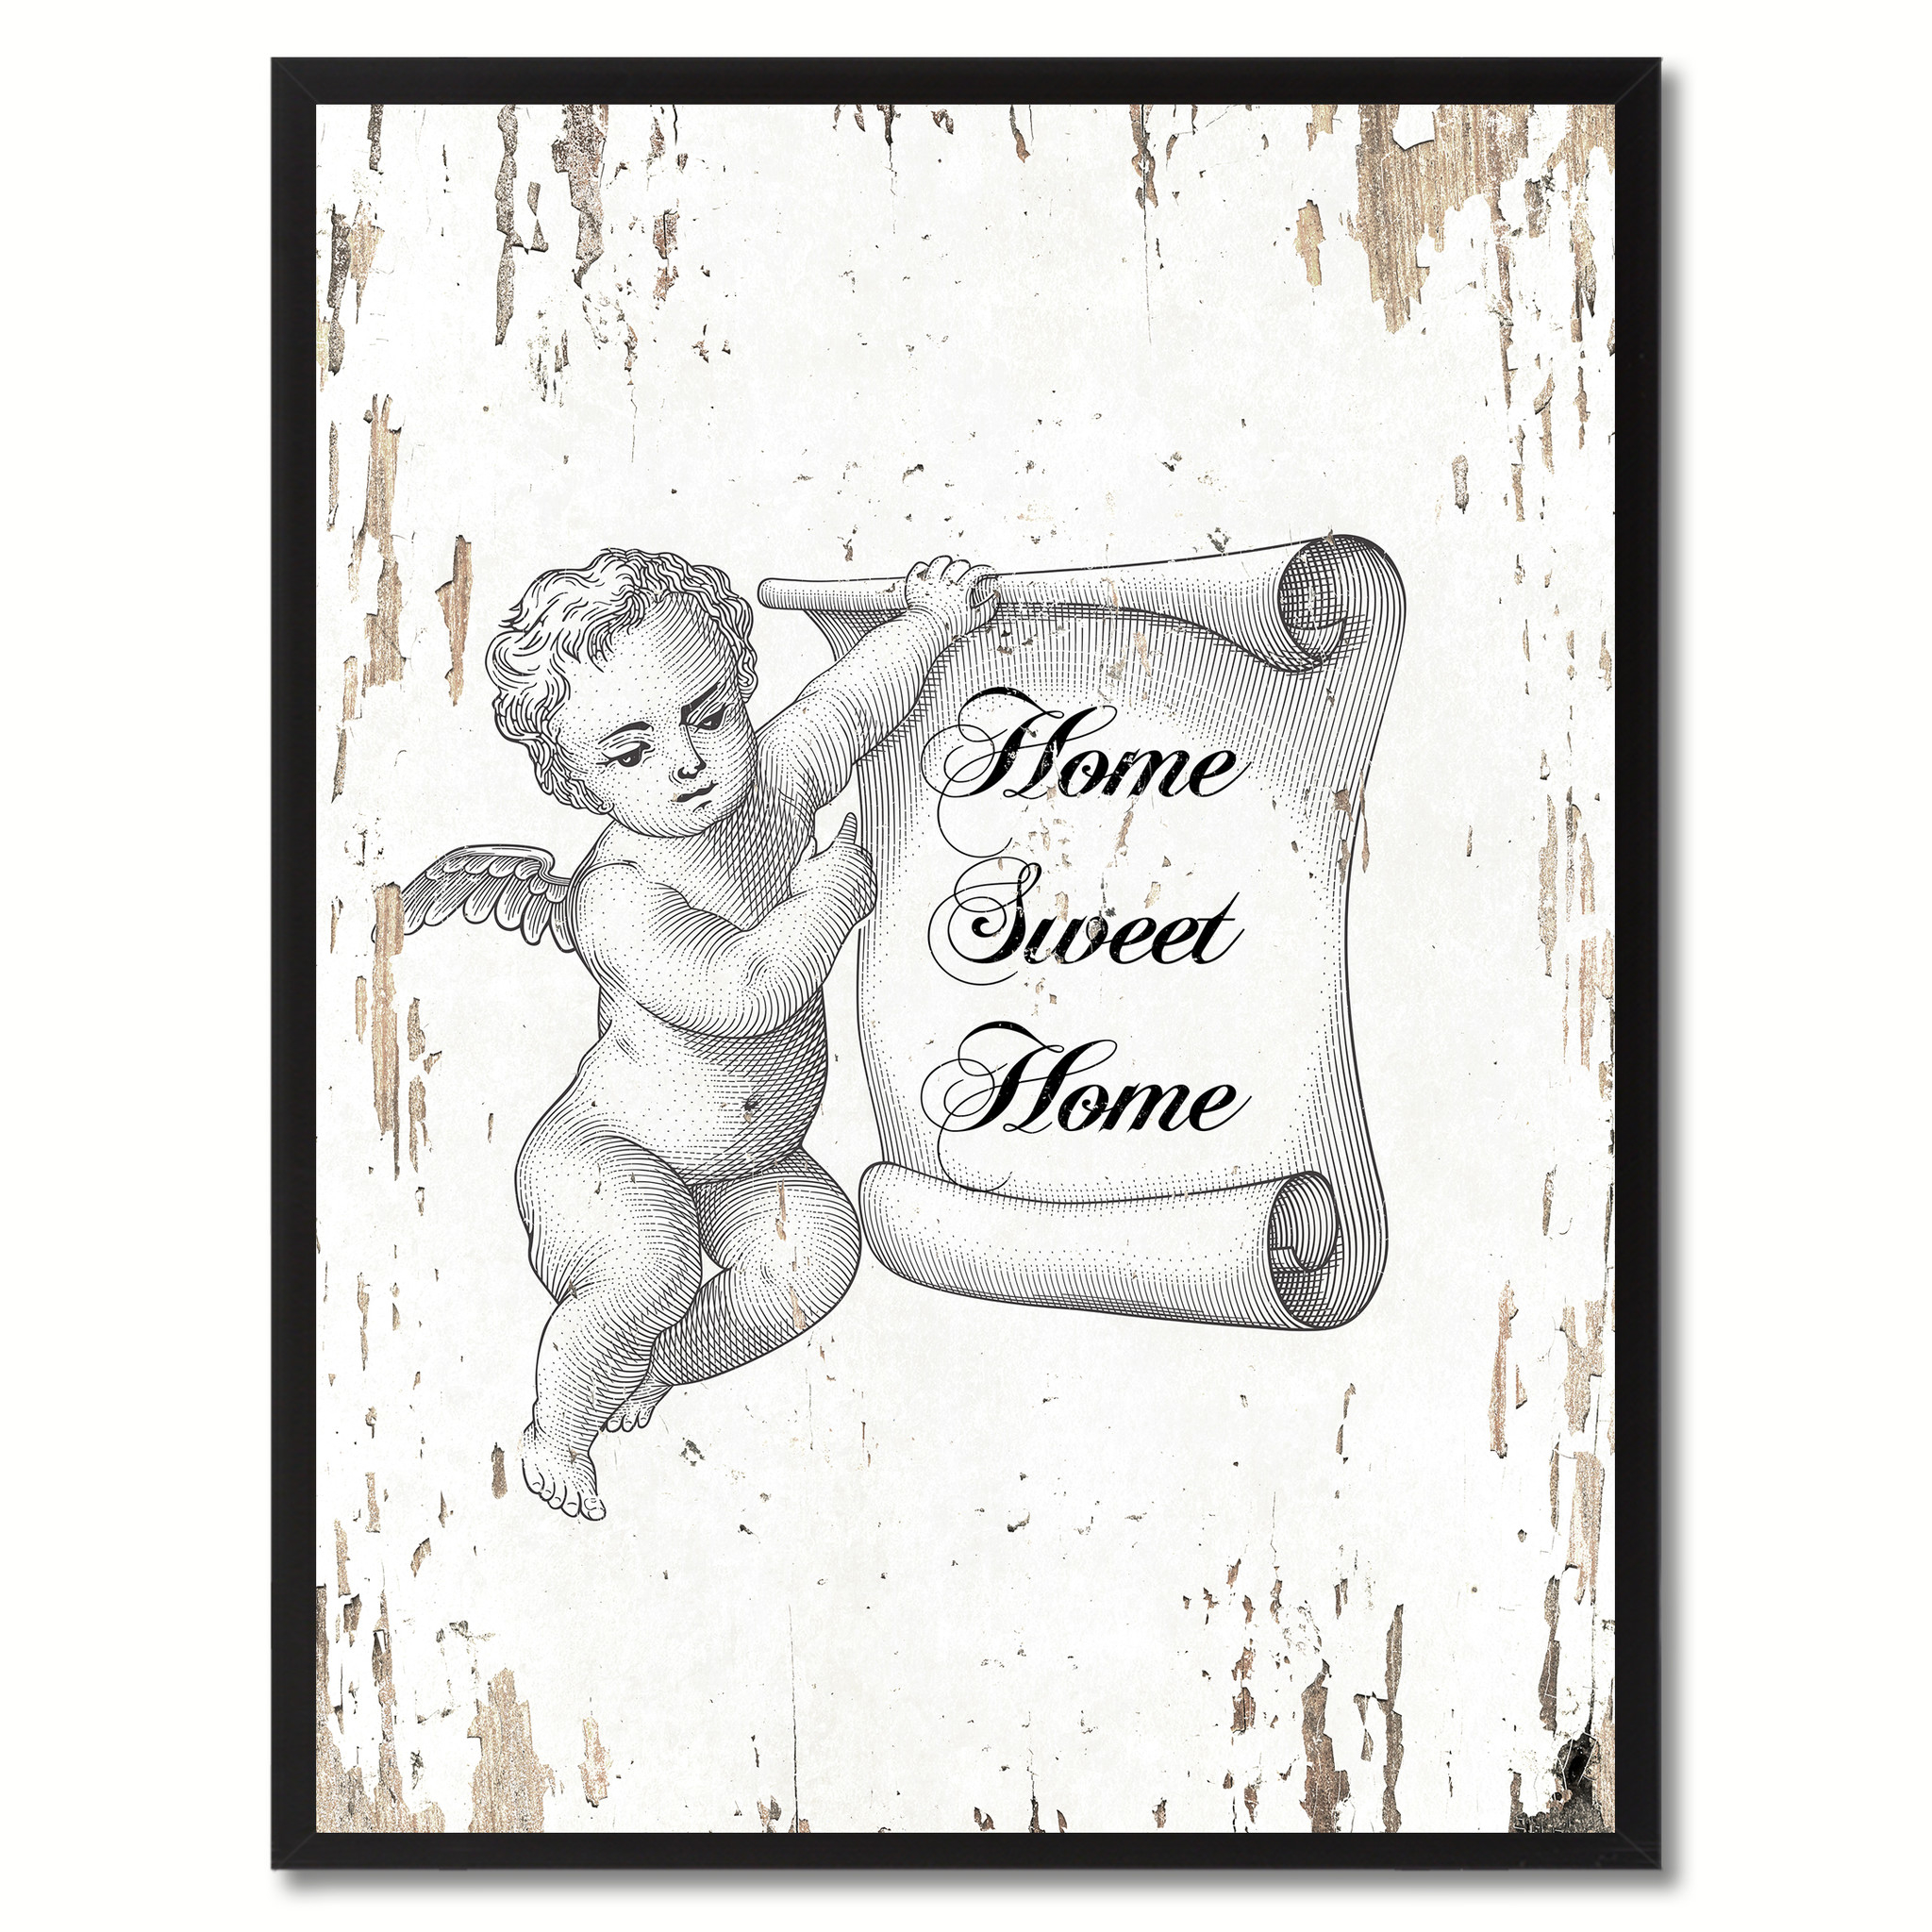 "Home Sweet Home Saying Canvas Print with Black Picture Frame Home Decor Wall Art Gifts 120076 - 7""x9\"""